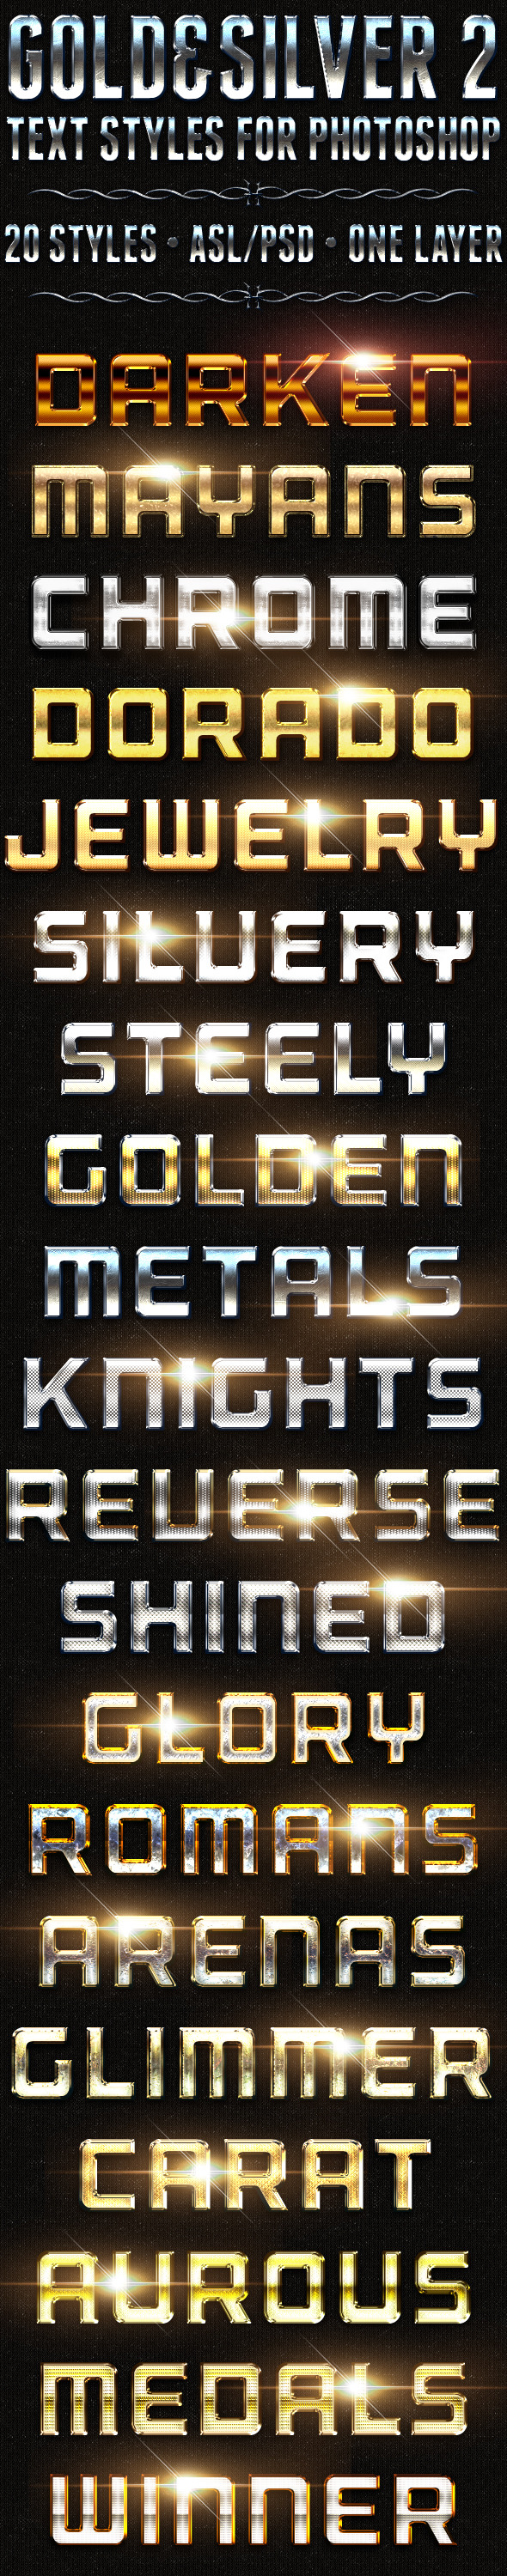 Gold & Silver 2 - Text Styles - Text Effects Styles